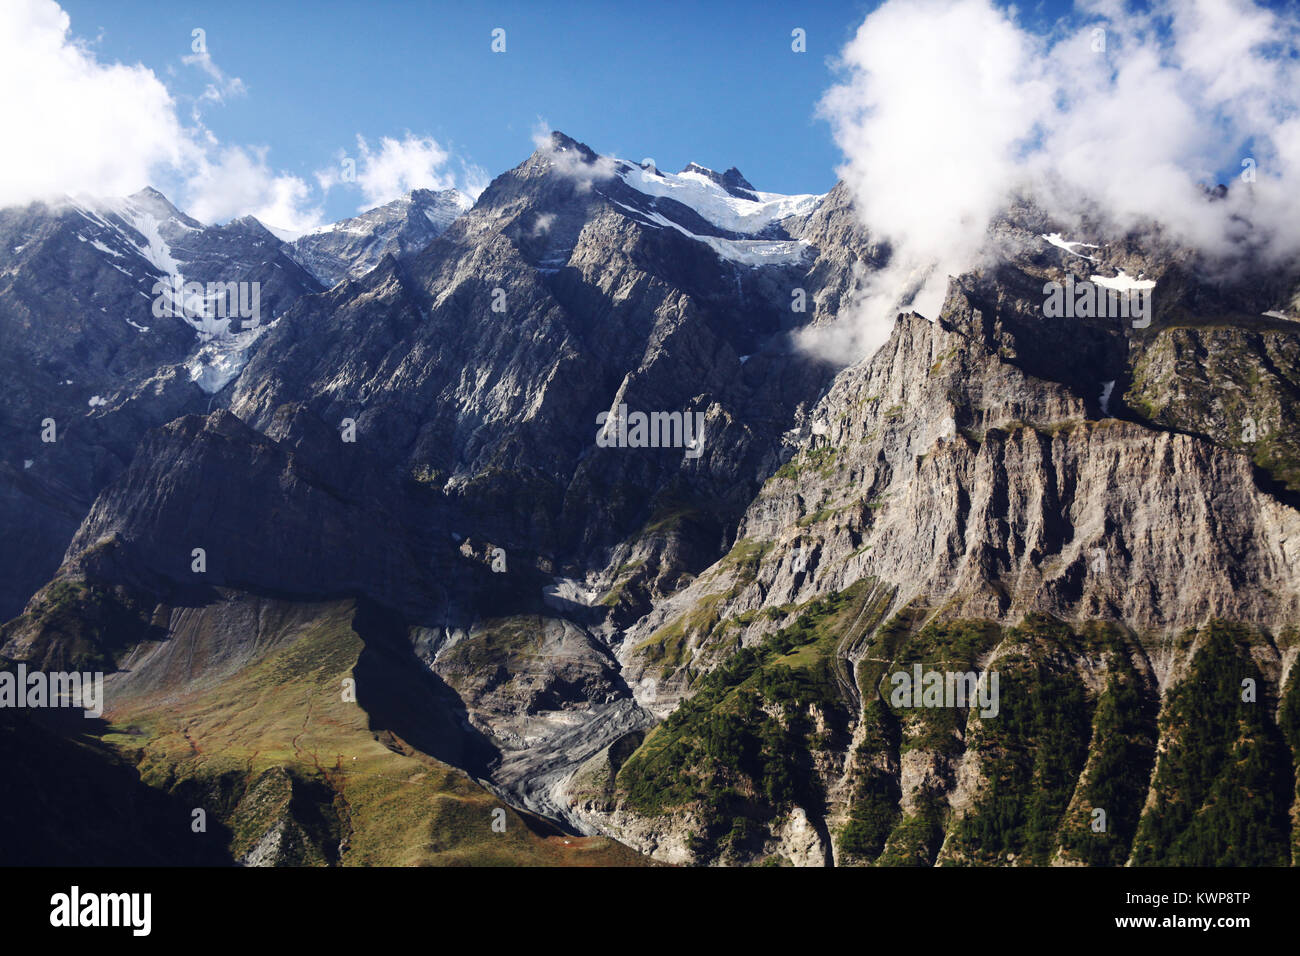 beautiful scenic landscape with majestic rocky mountains in indian himalayas, keylong region - Stock Image